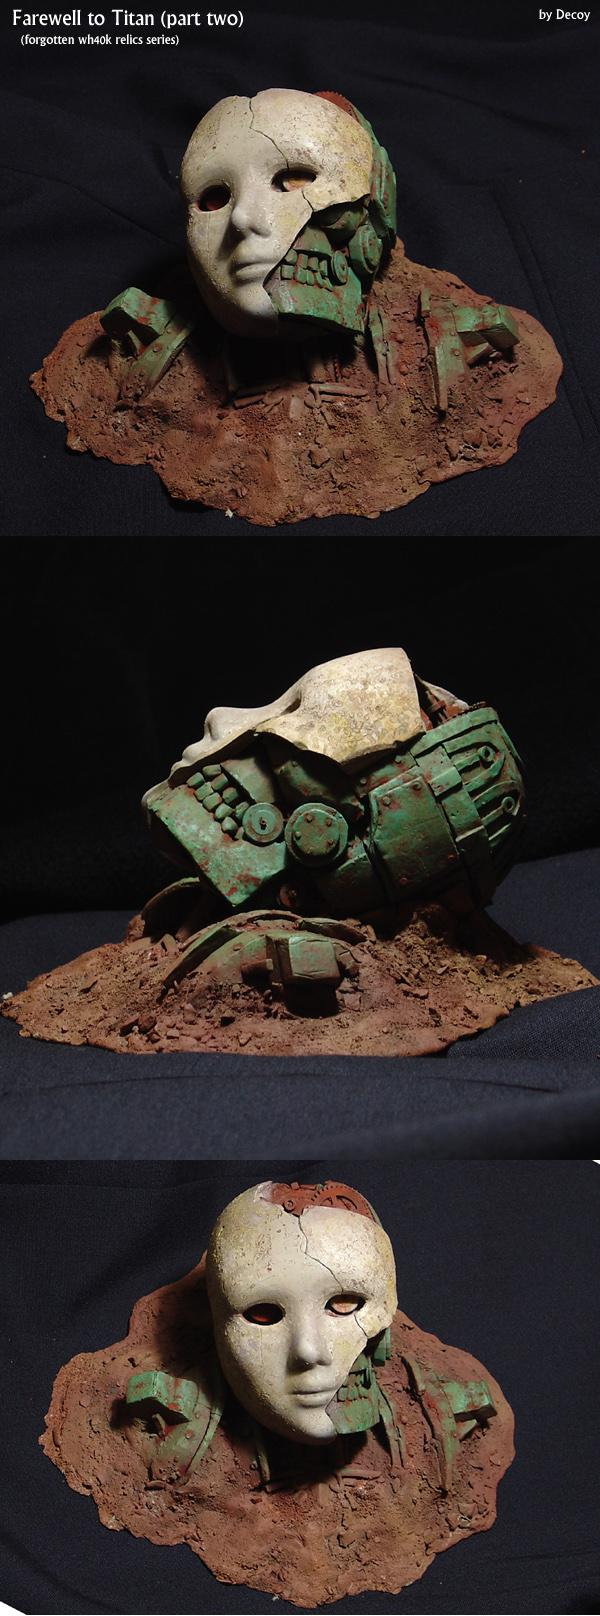 Artifact, Scifi, Titan, Warhammer Fantasy, Warmachine